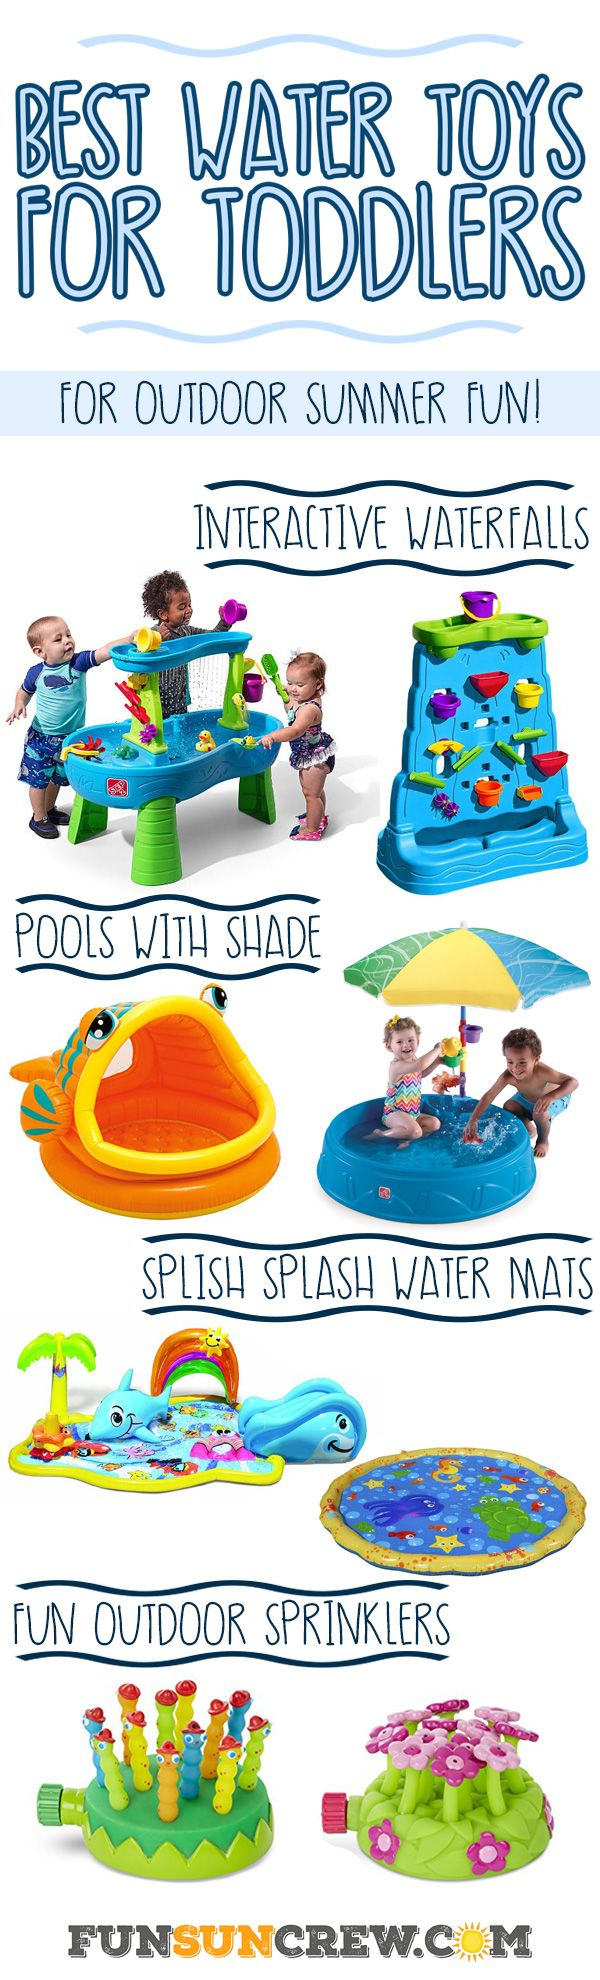 We review the best outdoor water toys for toddlers this summer. These toddler water toys spark the imagination with interactive learning and hours of fun. - Learn more at https://funsuncrew.com MJ loves water toys but is afraid to go in our pool at 2yrs old. I'm sure in time that will change.